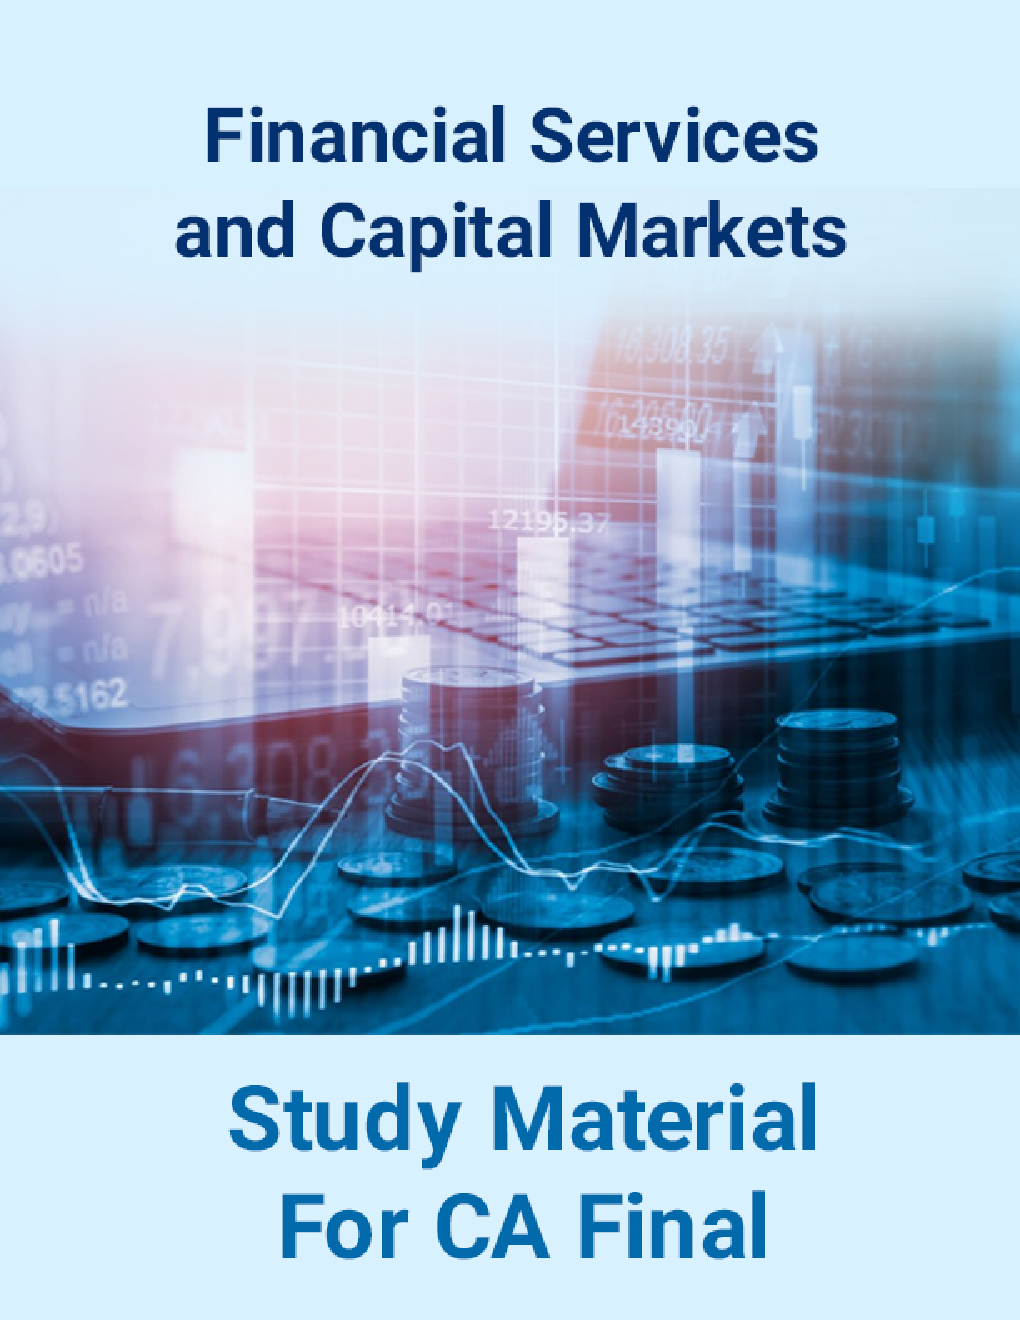 Financial Services and Capital Markets Study Material For CA Final - Page 1